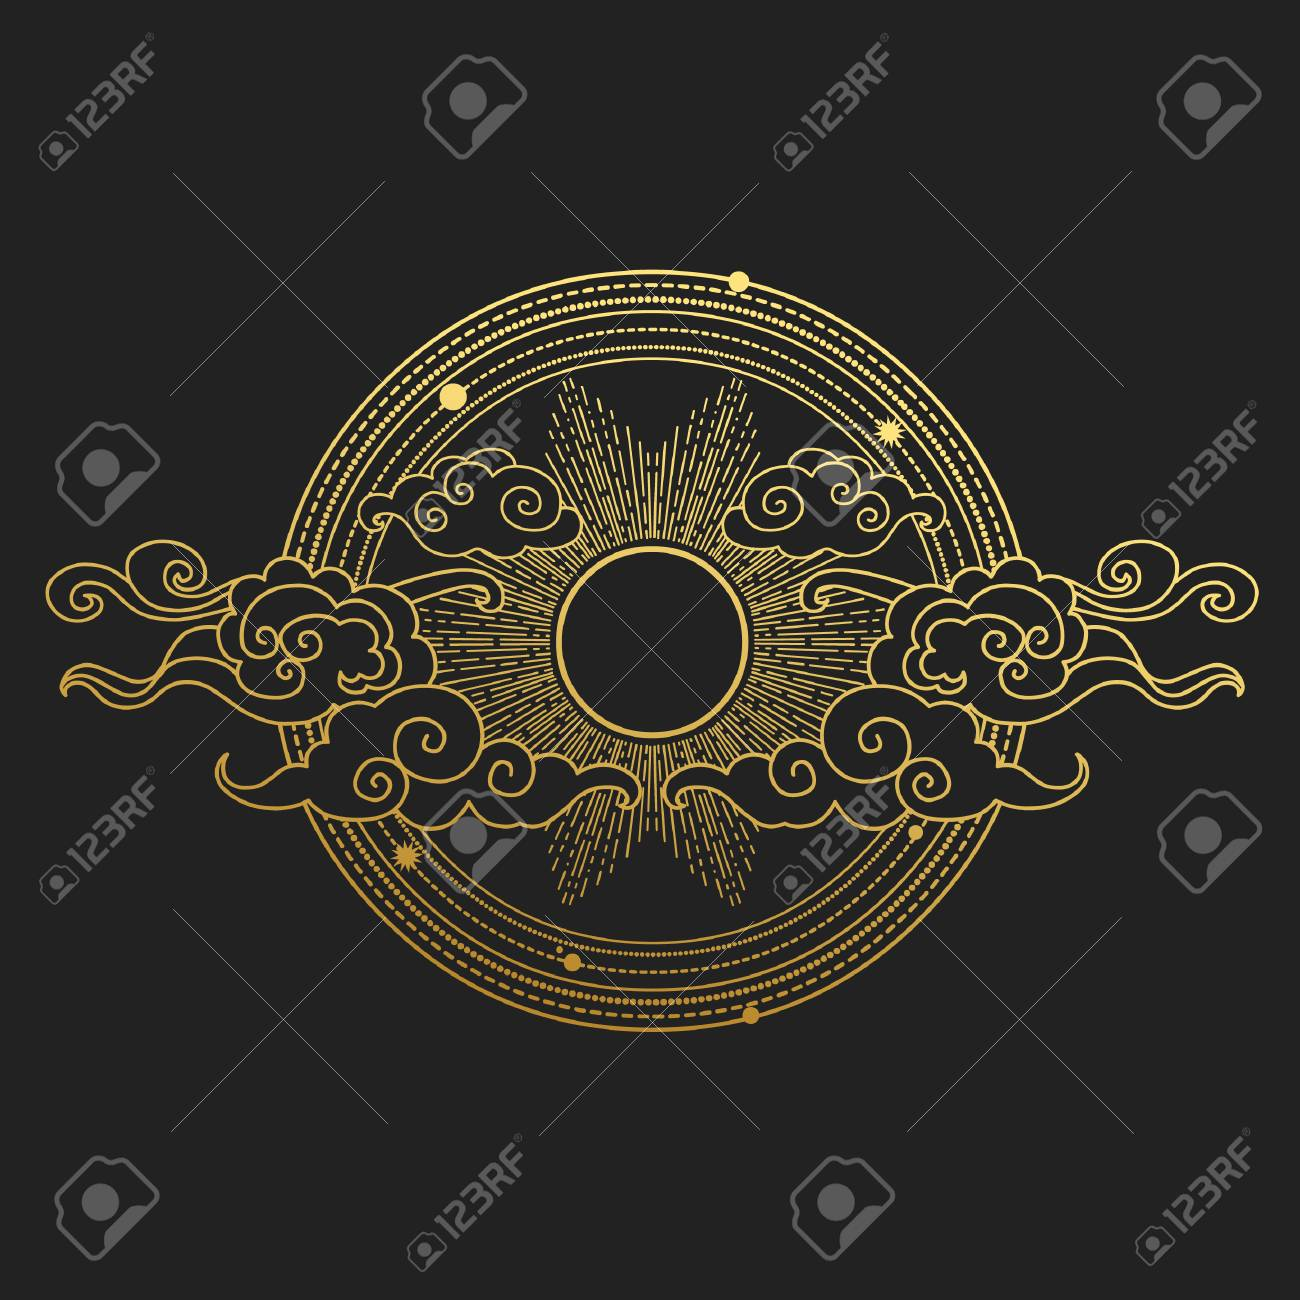 Sun in the cloudy sky. Decorative graphic design elements in oriental style. Vector hand drawn illustration - 105230785